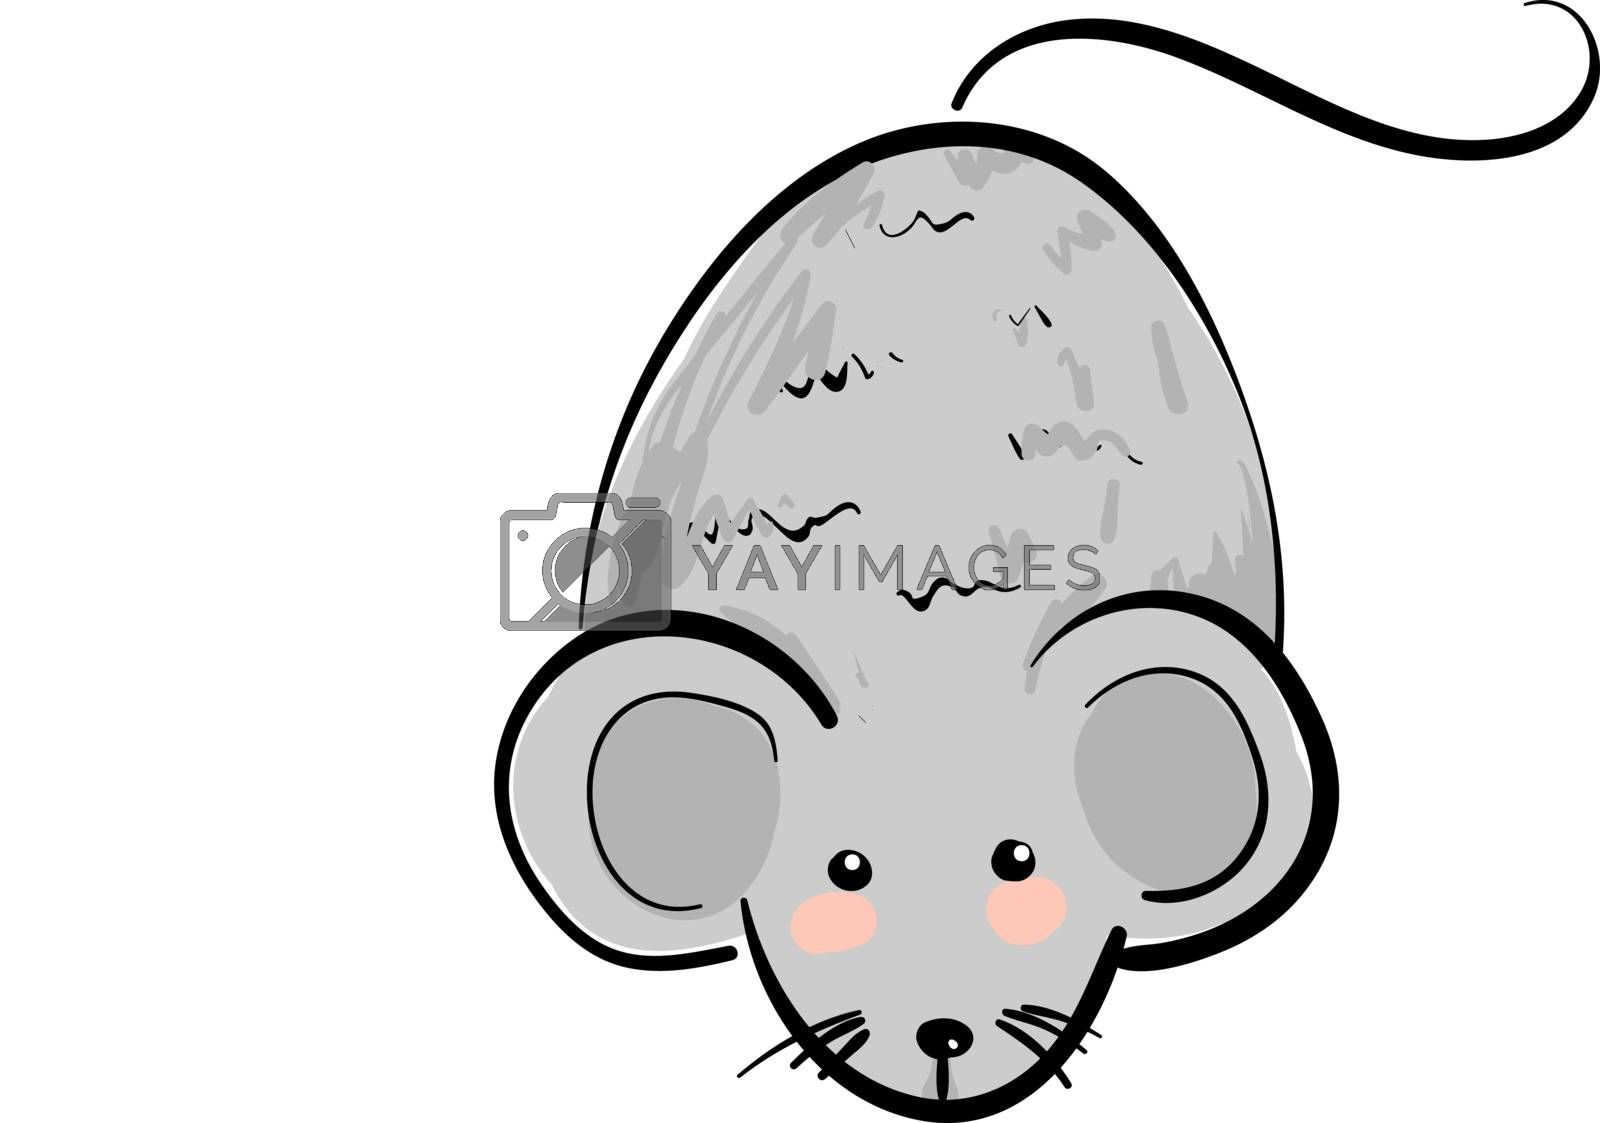 Royalty free image of Cartoon cute little mouse set on isolated white background viewe by Morphart